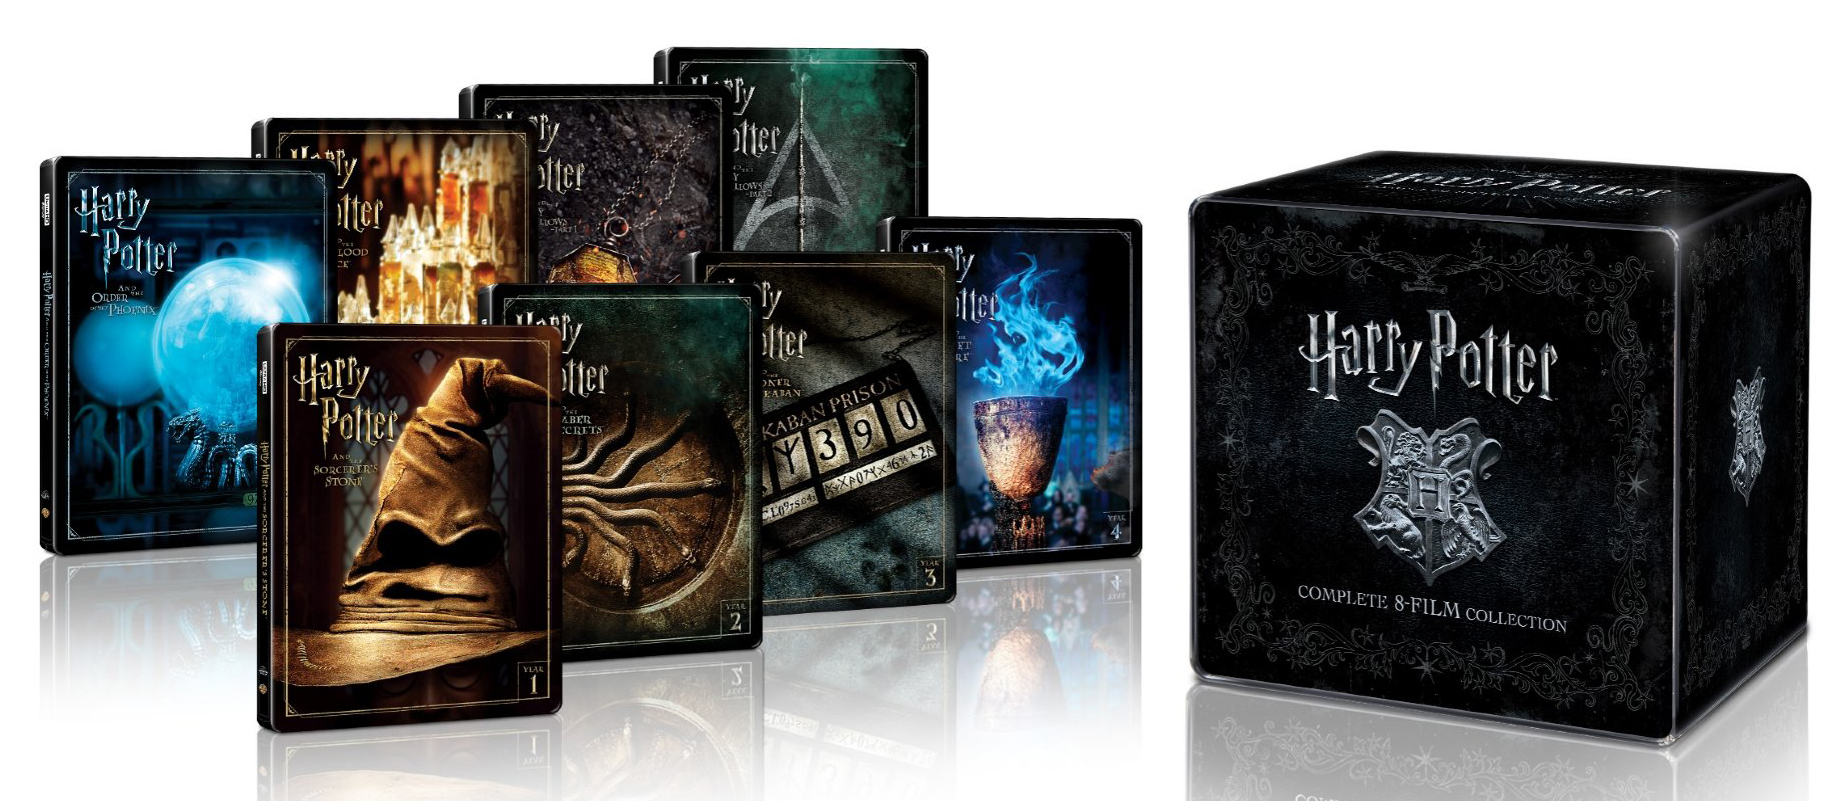 Harry Potter: 8-Film Collection 4K (SteelBook) UHD Ultra HD Blu-ray